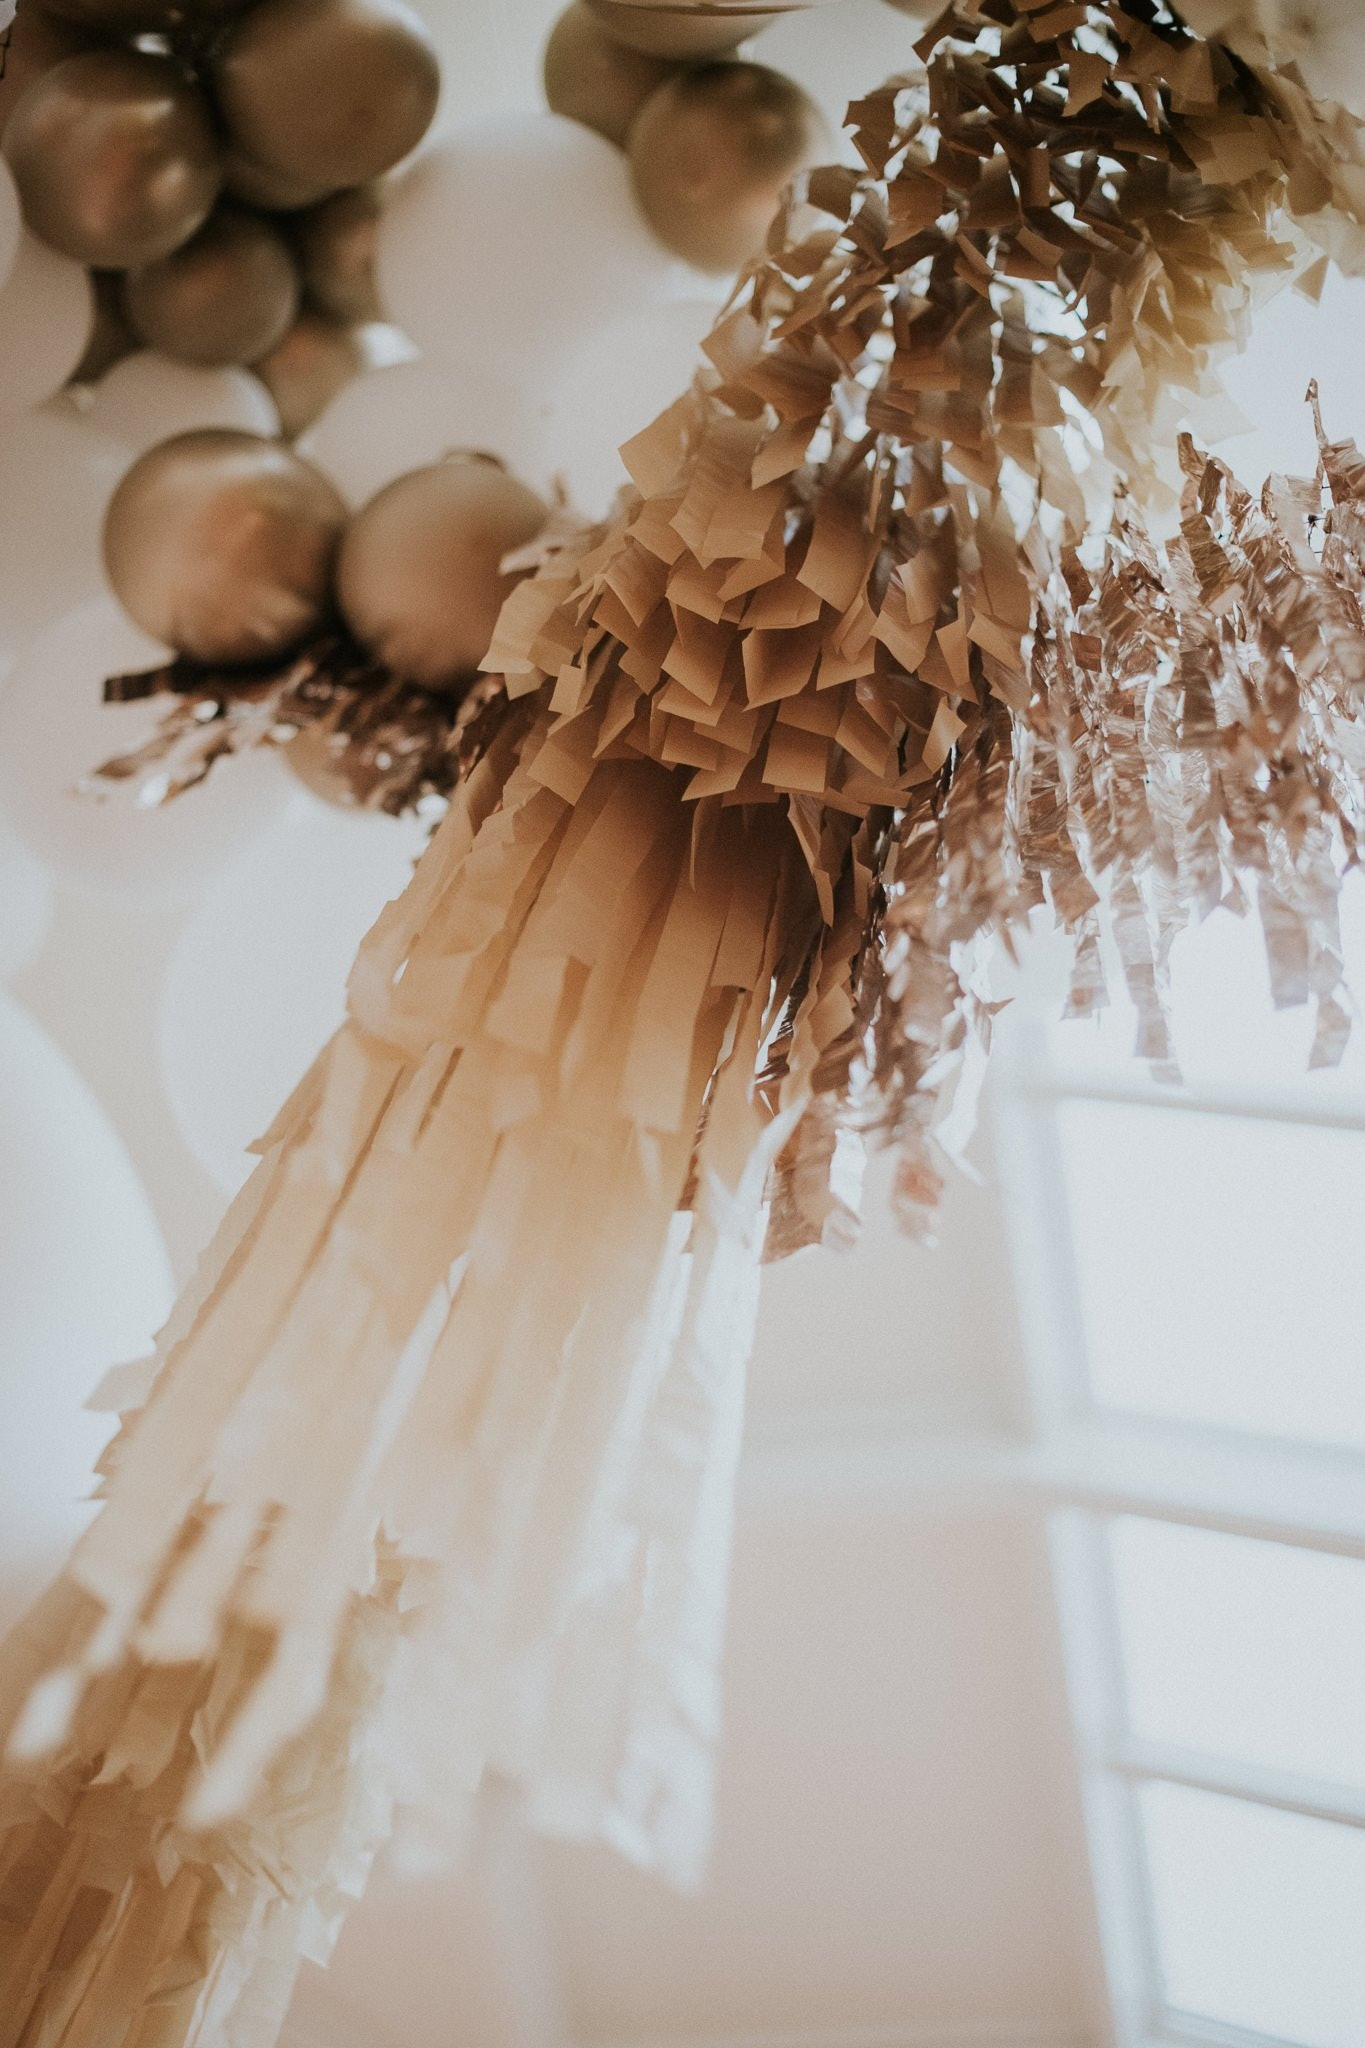 Gold and white streamer garland hanging from the roof